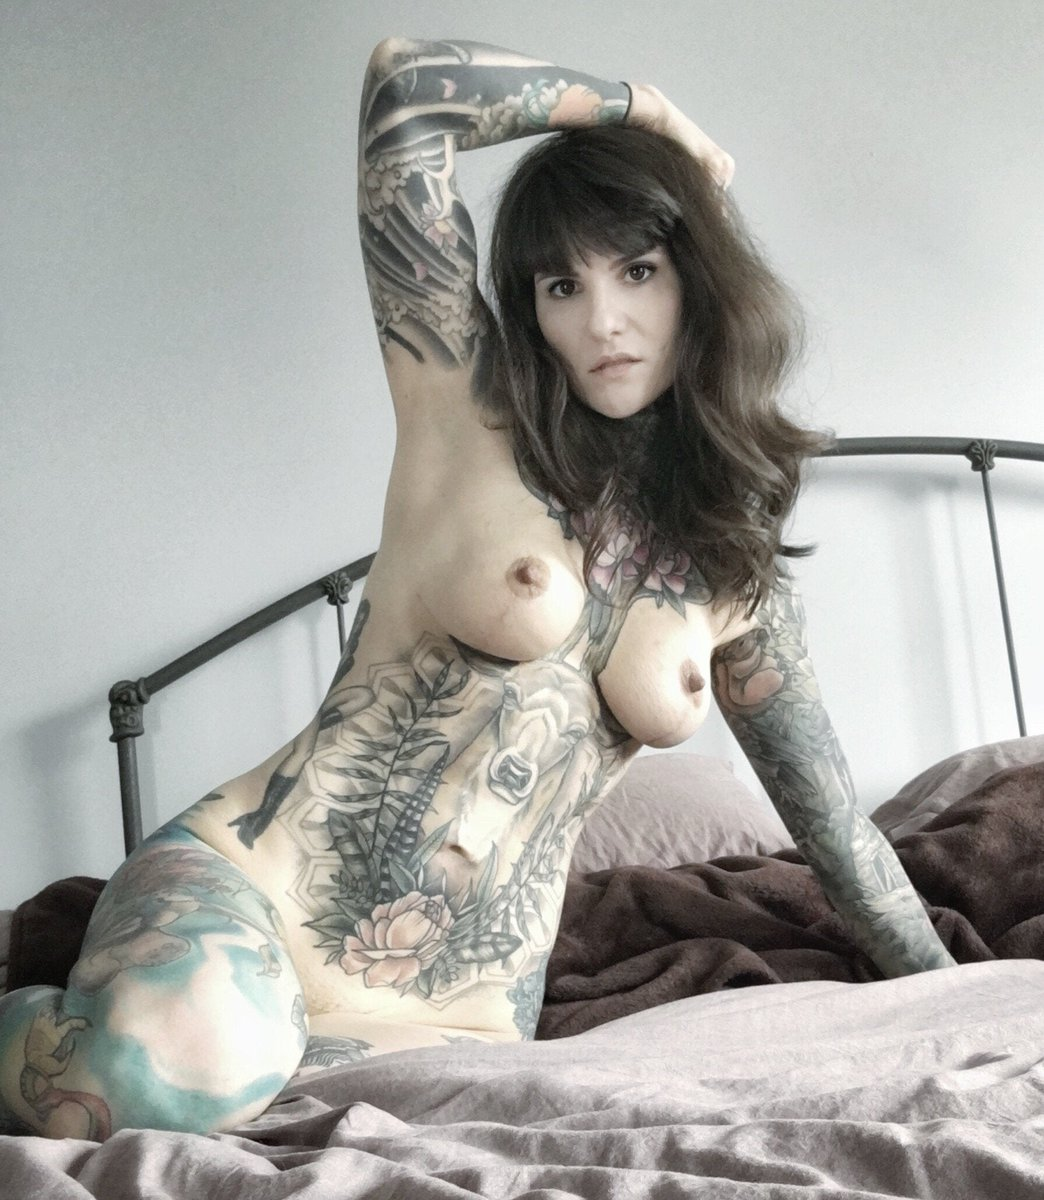 Is there a bad day for a #inked beauty?